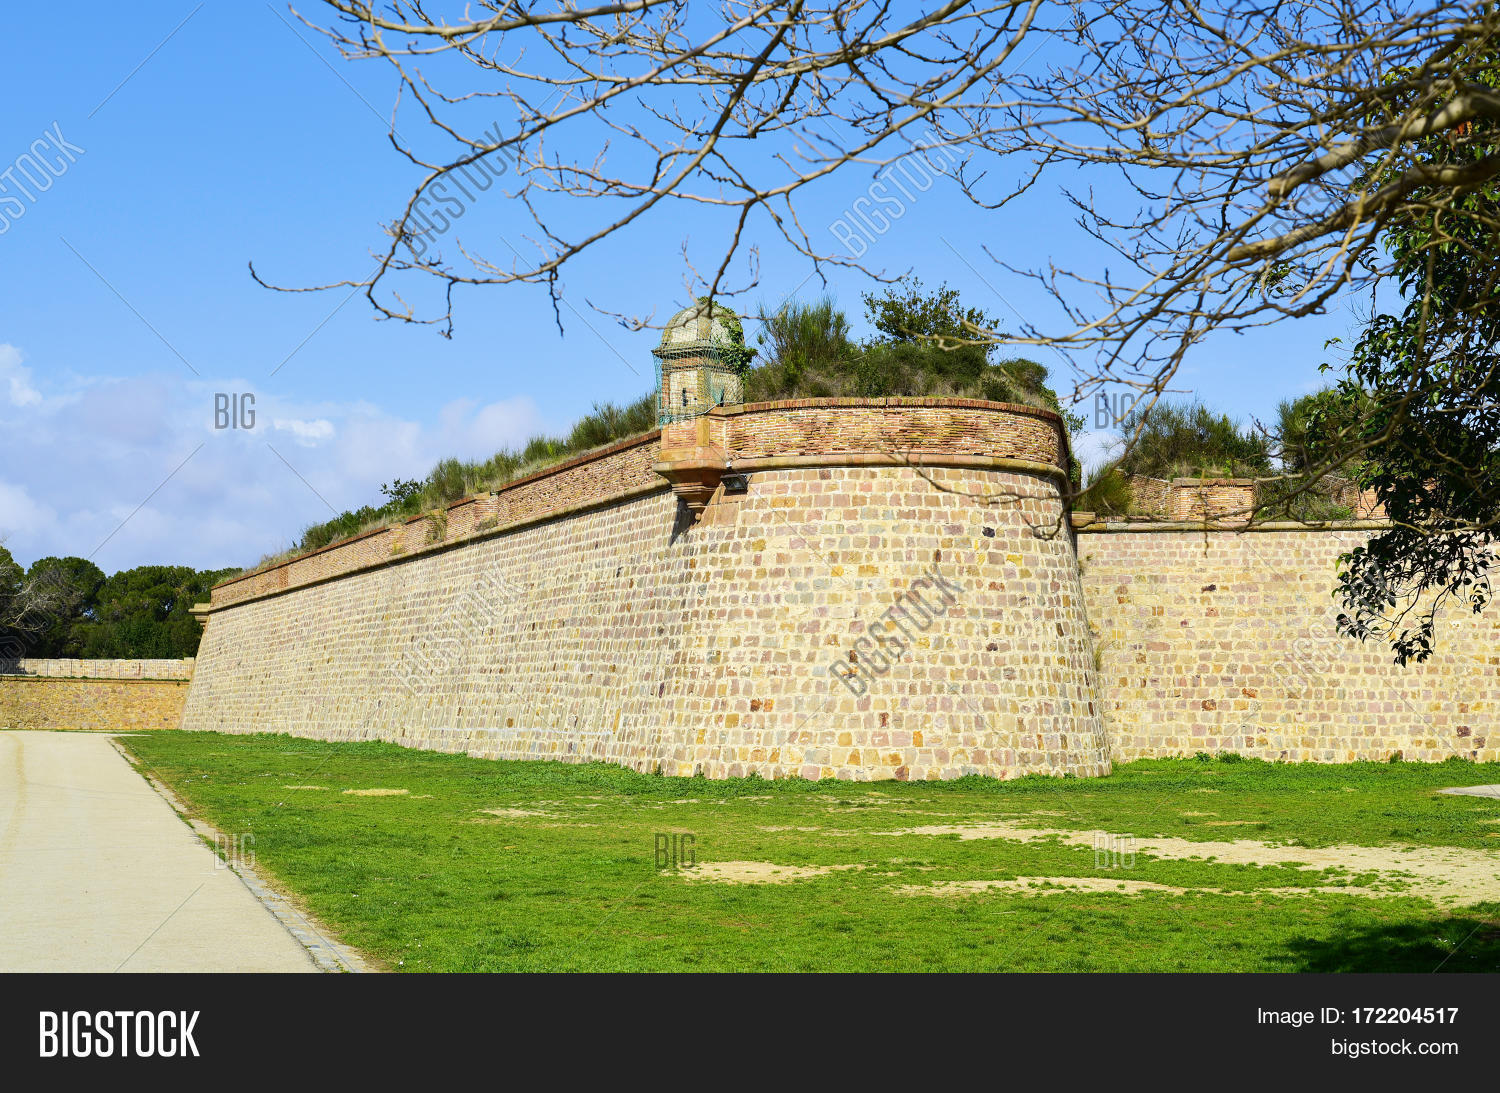 A Side View Of The Old Military Fortress Montjuic Castle In Barcelona, Spain